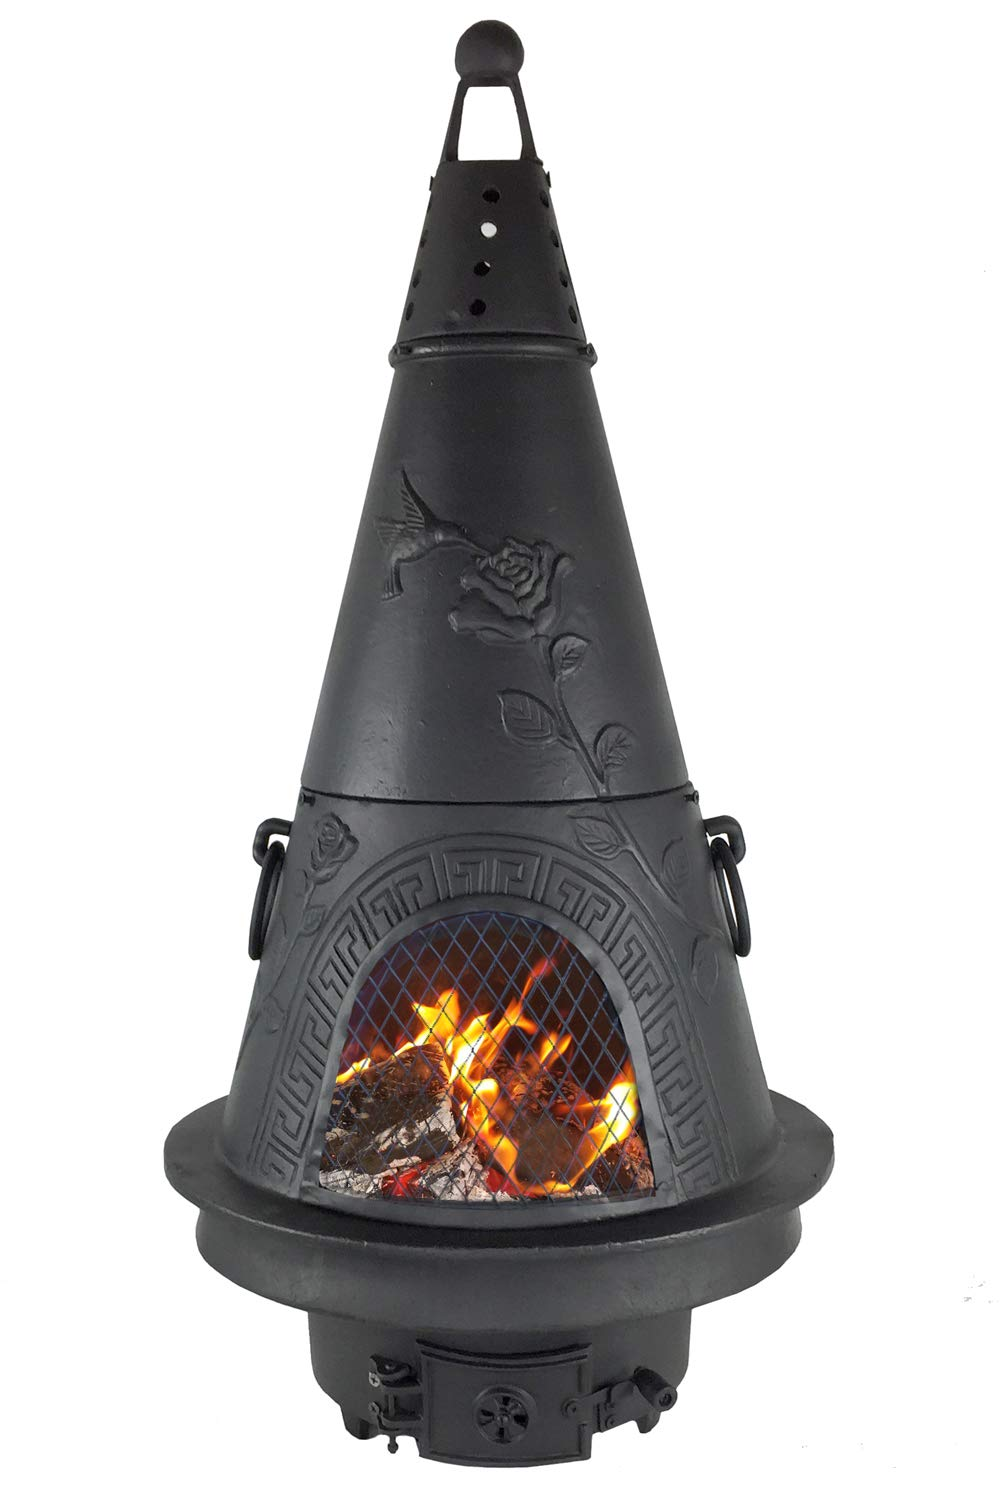 The Blue Rooster CAST Aluminum Garden Chiminea Wood Burning Chiminea by The Blue Rooster